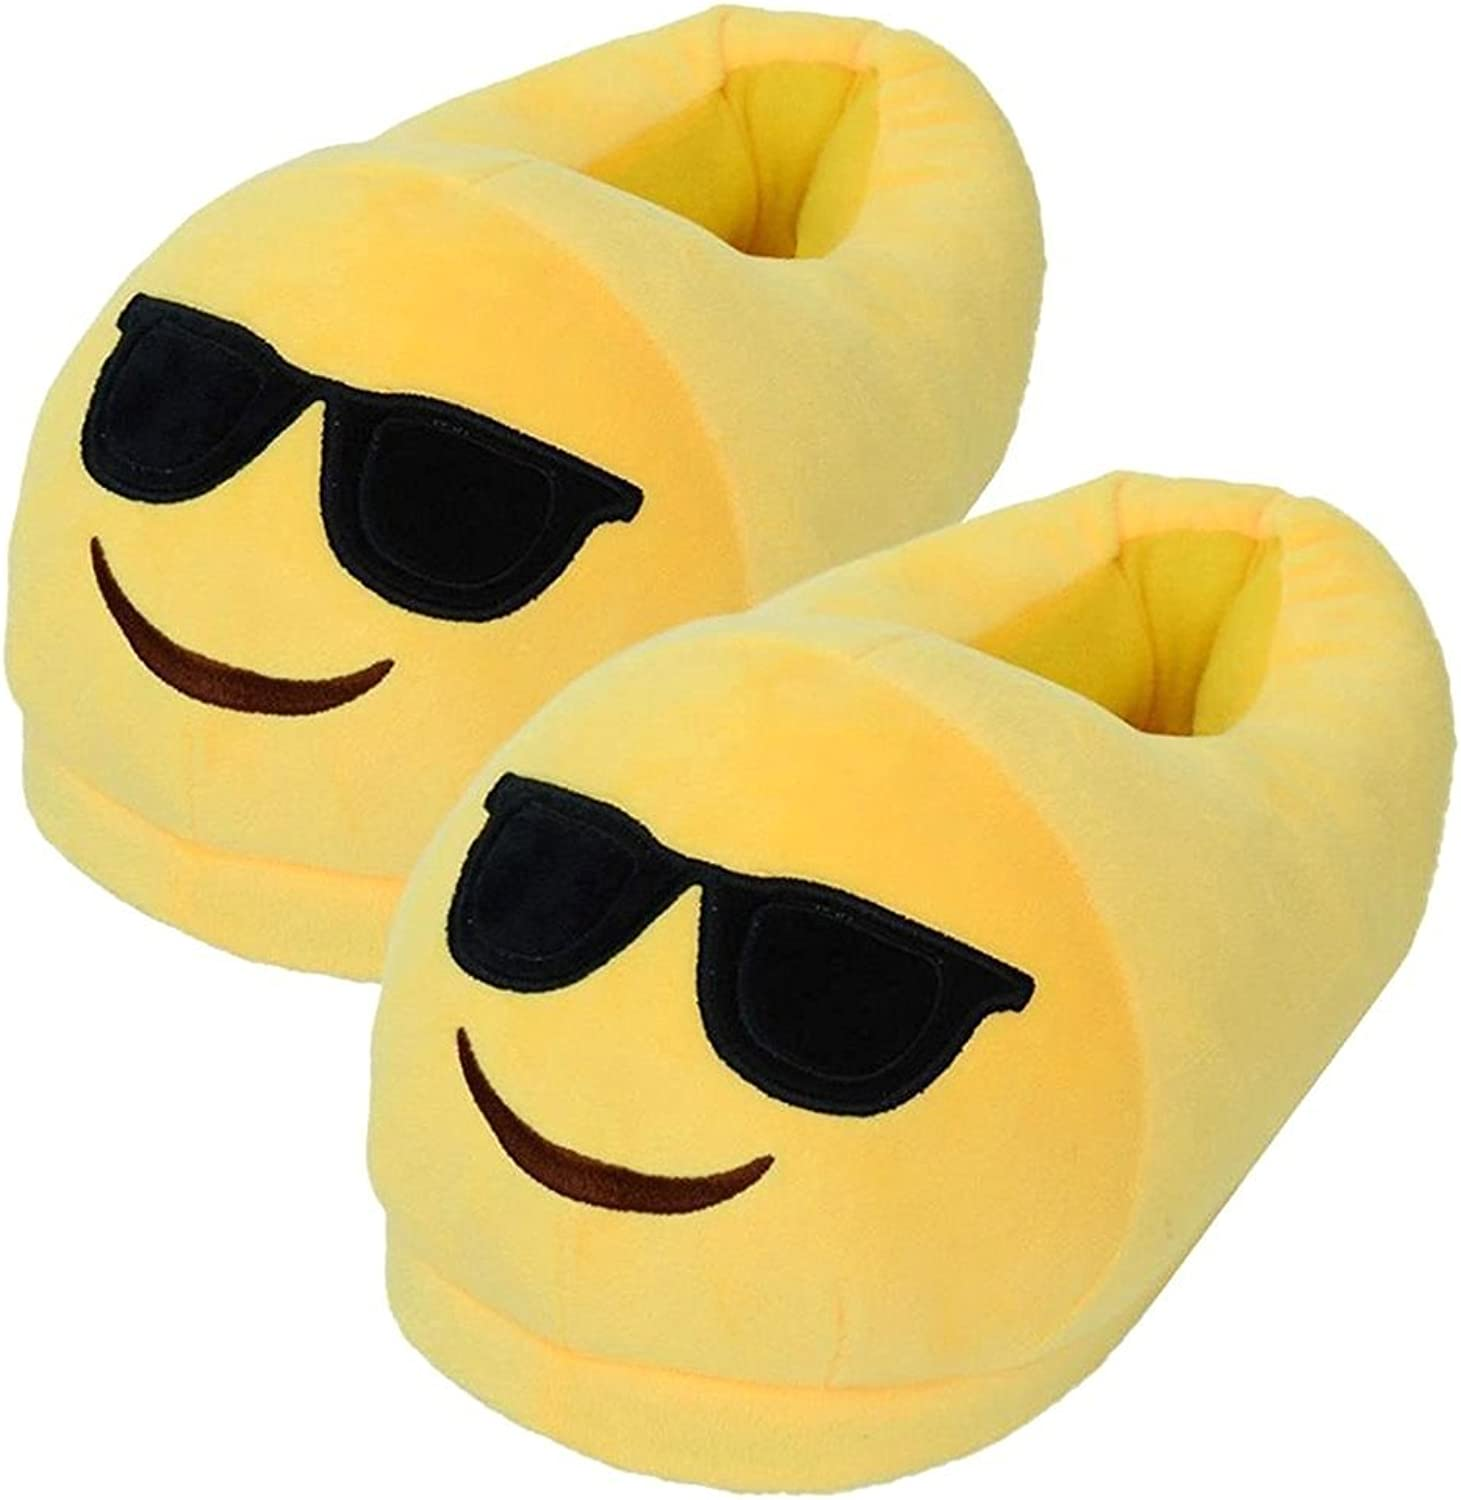 Emoji Sunglasses Slippers Comfortable Indoor shoes for Big Kids & Women with Non-Skid  We Pay Your Sales Tax B11803